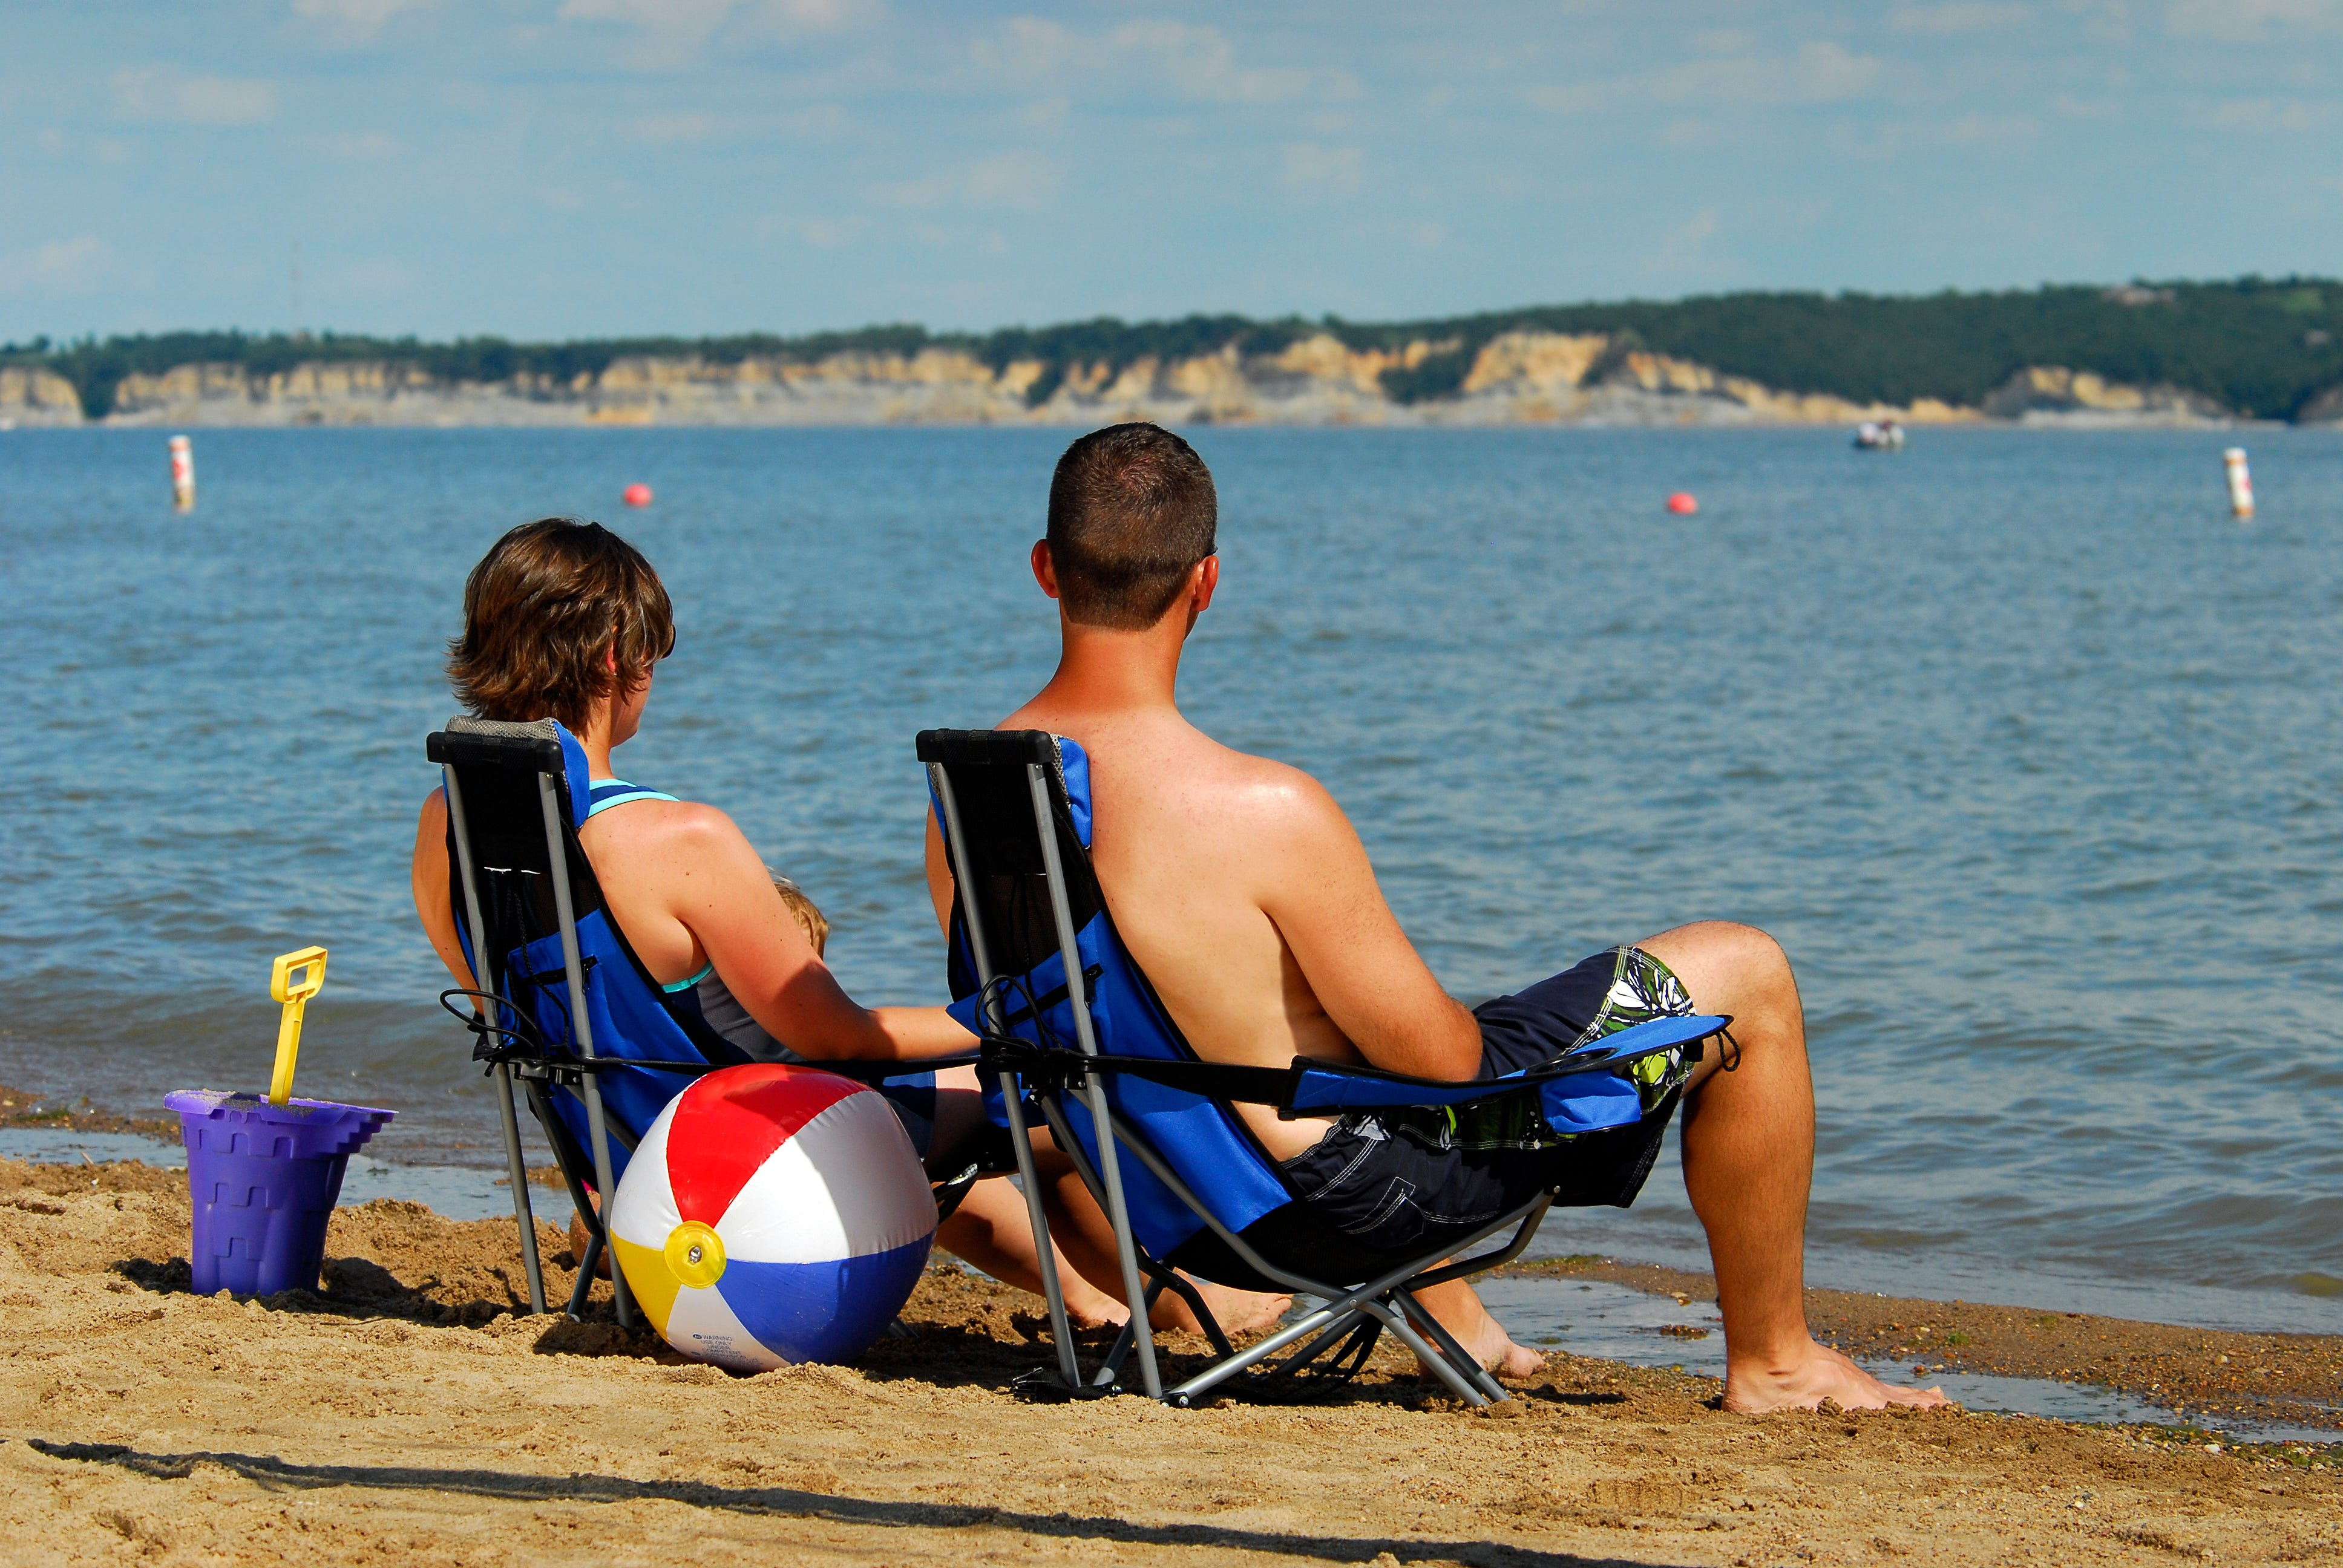 Busiest camping season : Travelers choose outdoor recreation close to home amid COVID-19 pandemic